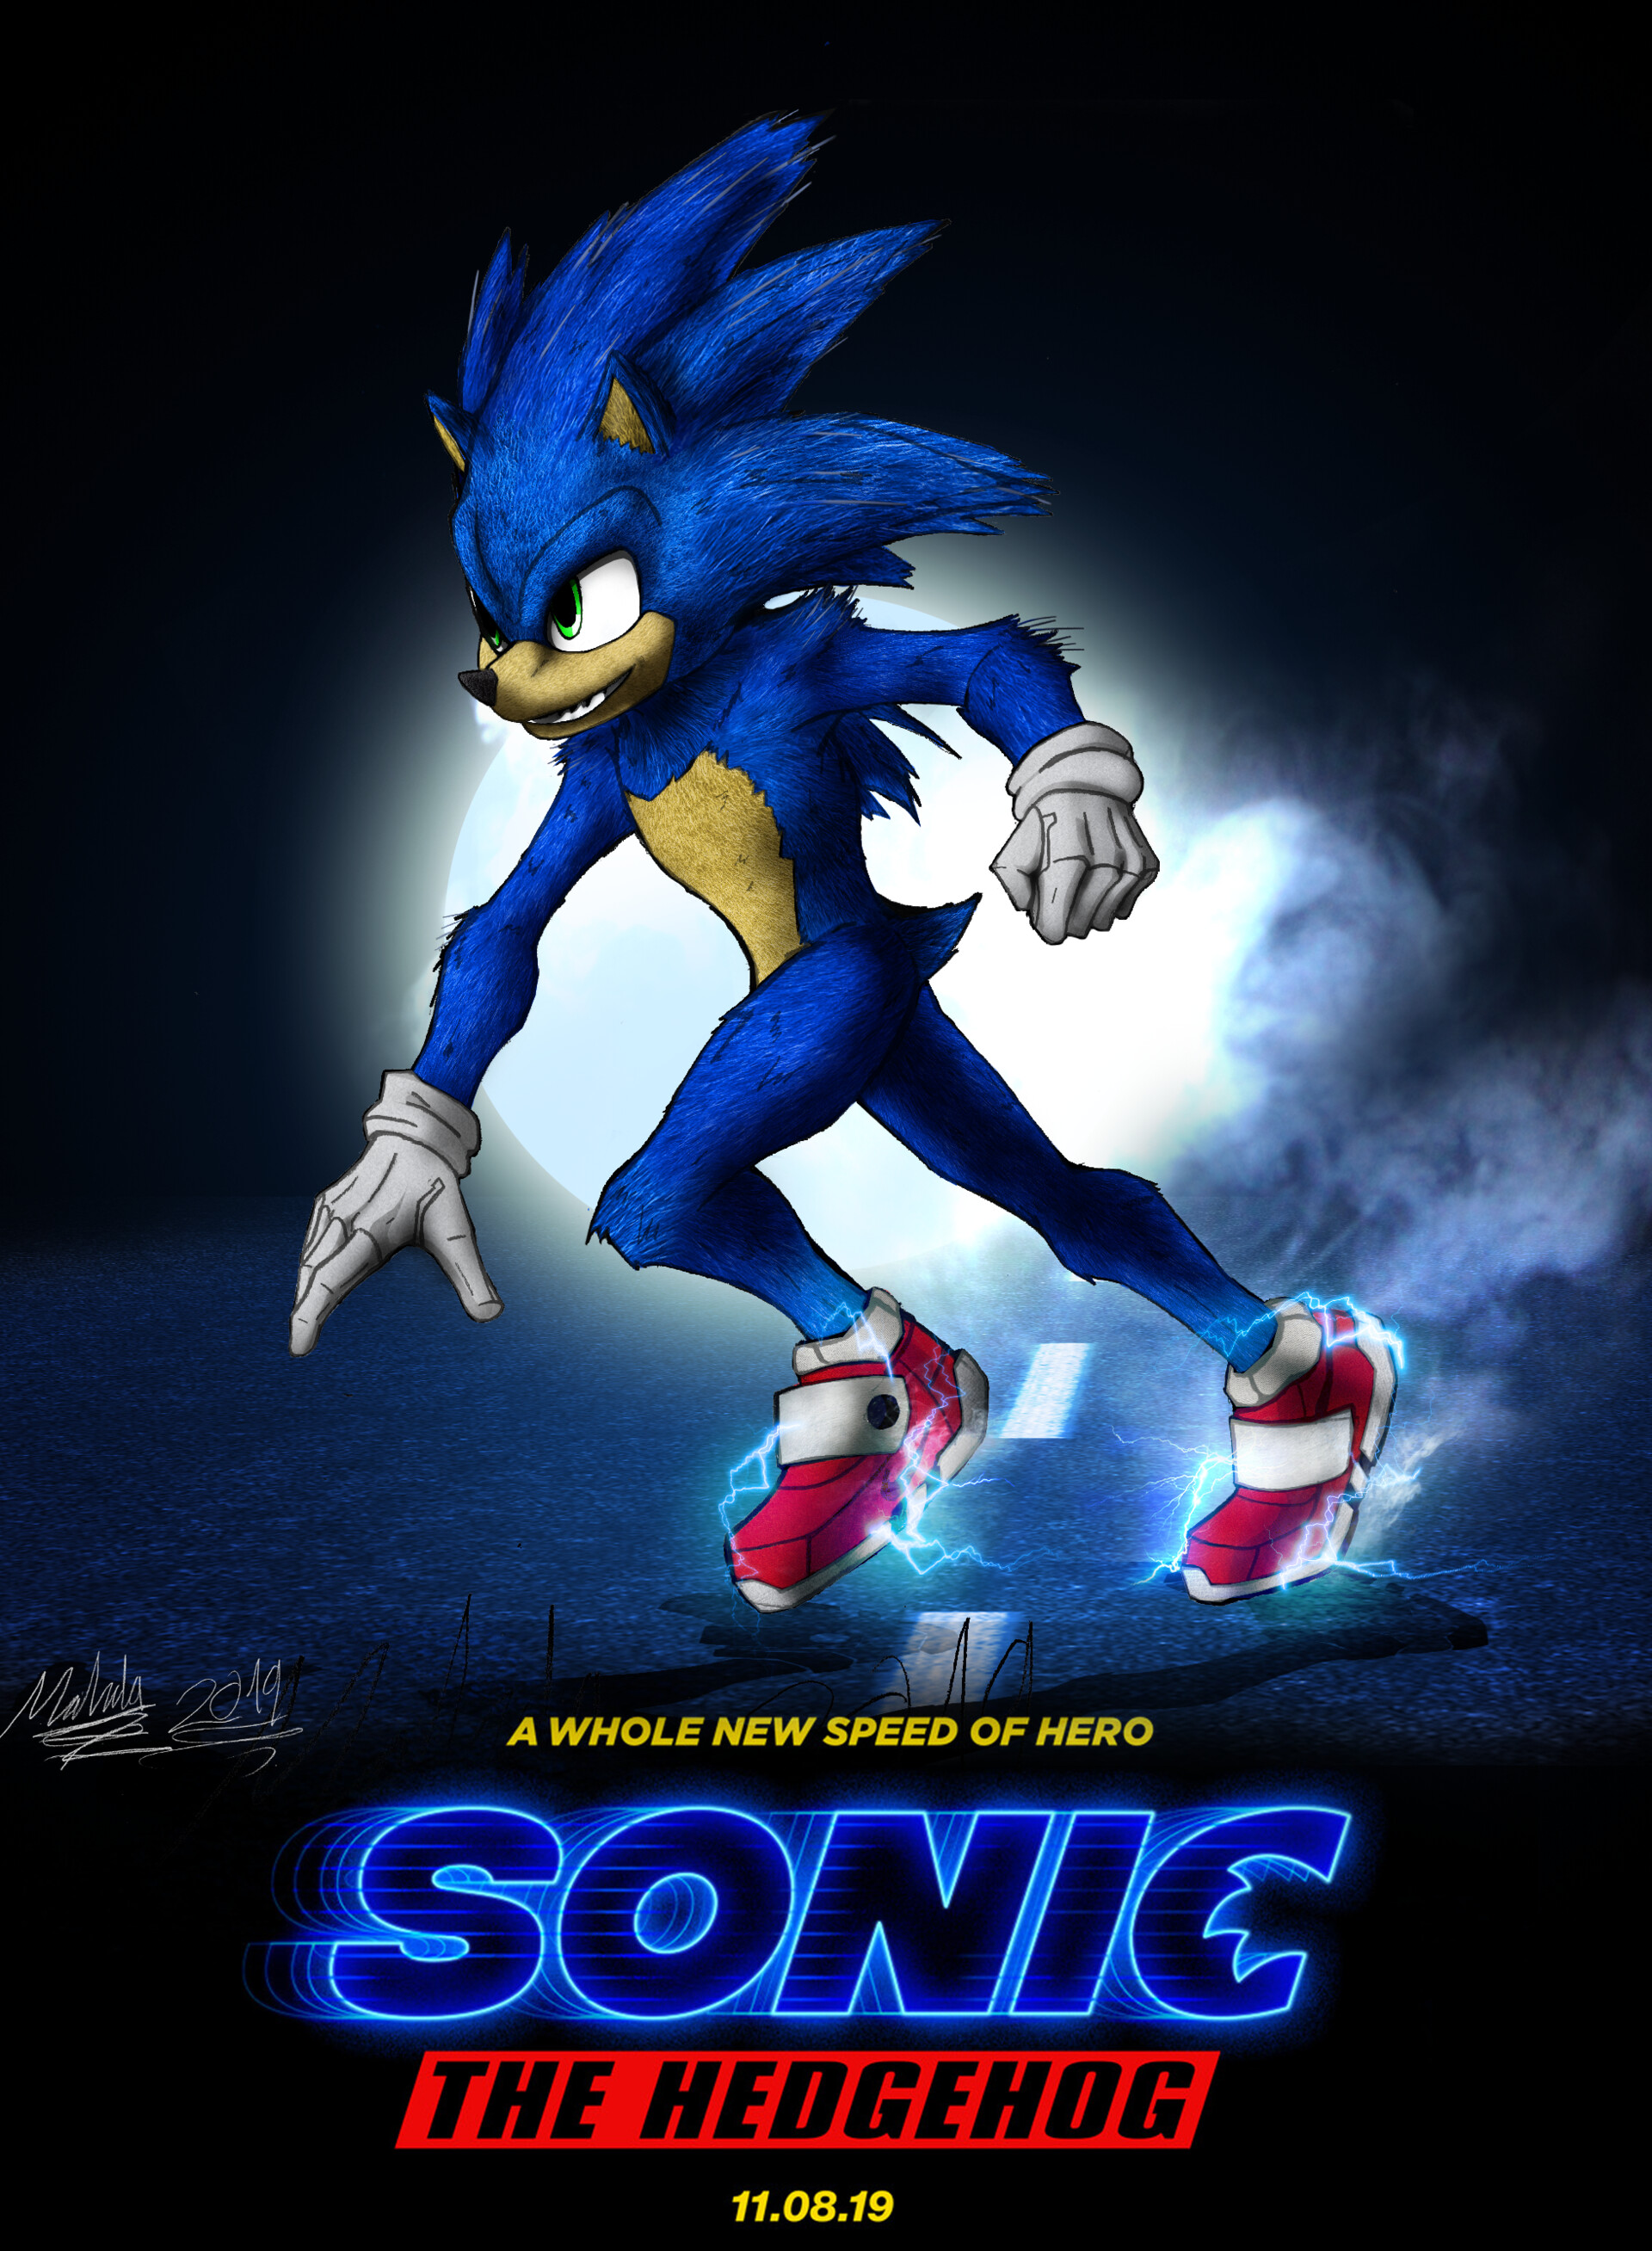 sonic the hedgehog movie poster 2019